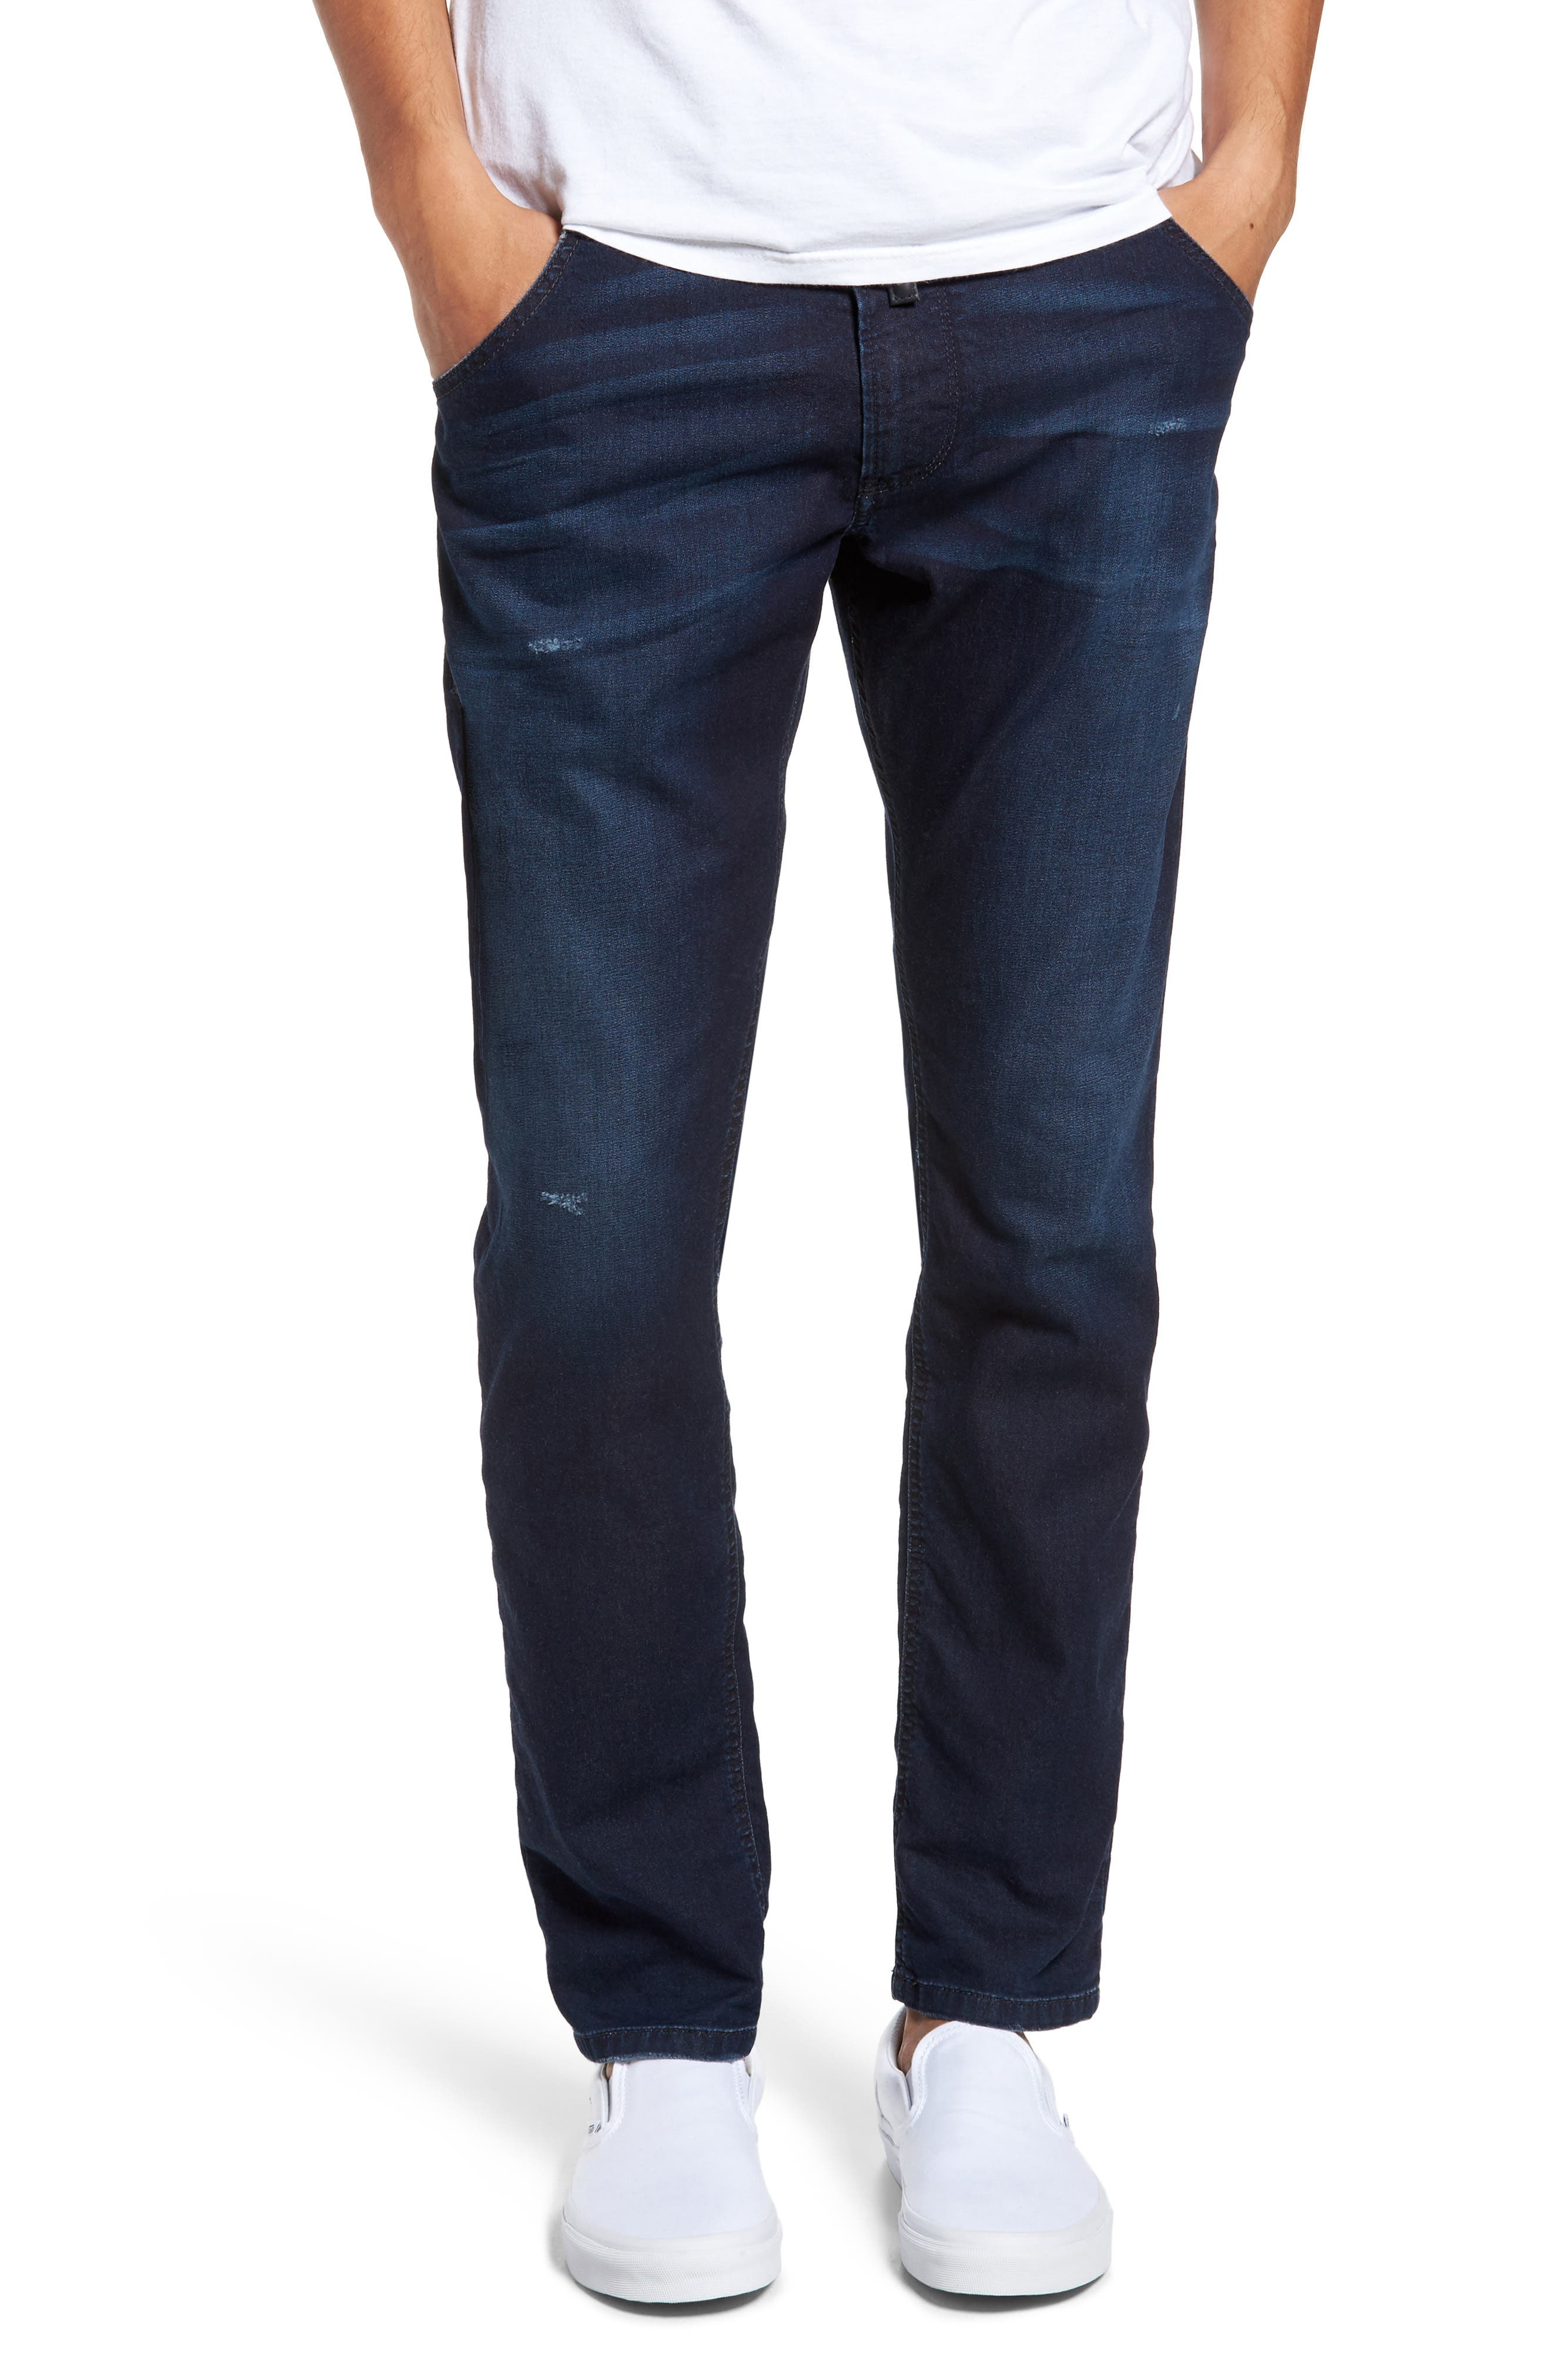 Krooley Slouchy Skinny Jeans,                             Main thumbnail 1, color,                             900